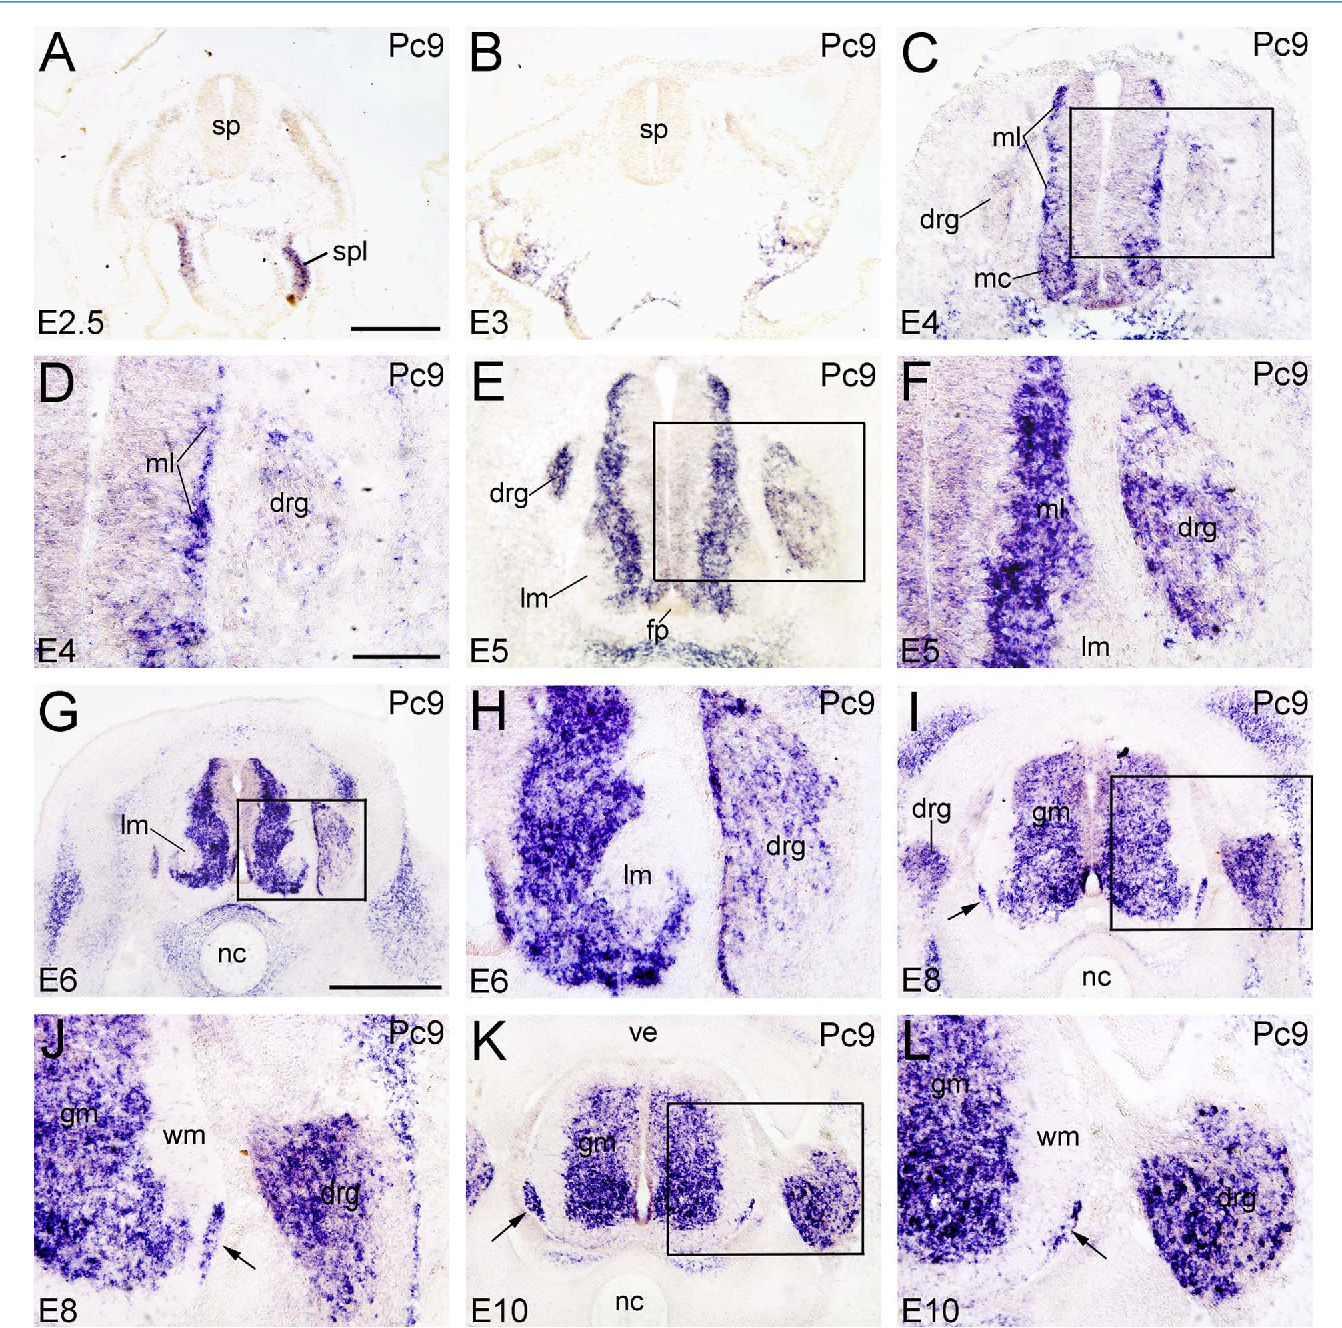 Figure 4. Expression of Pcdh9 in transverse sections of the developing spinal cord at the lumbar level from 2.5 days of incubation (E2.5) to E10 (indicated in each panel). A–L: All panels show in situ hybridization results for Pcdh9 (Pc9). The arrows in I–L point to the cap cells at the positions where the ventral roots grow out. The areas boxed in C, E, G, I, and K are shown at a higher magnification in D, F, H, J, and L, respectively. Abbreviations: drg, dorsal root ganglion; fp, floor plate; gm, gray matter; lm, lateral motor column; mc, motor column; ml, mantle layer; nc, notochord; sp, spinal cord; spl, splanchnopleure; ve, vertebral arch; wm, white matter. Scale bar ¼ 100 lm in D (also applies to F,H); 200 lm in A (also applies to B,C,E,J,L); 500 lm in G (also applies to I,K). [Color figure can be viewed in the online issue, which is available at wileyonlinelibrary.com.]